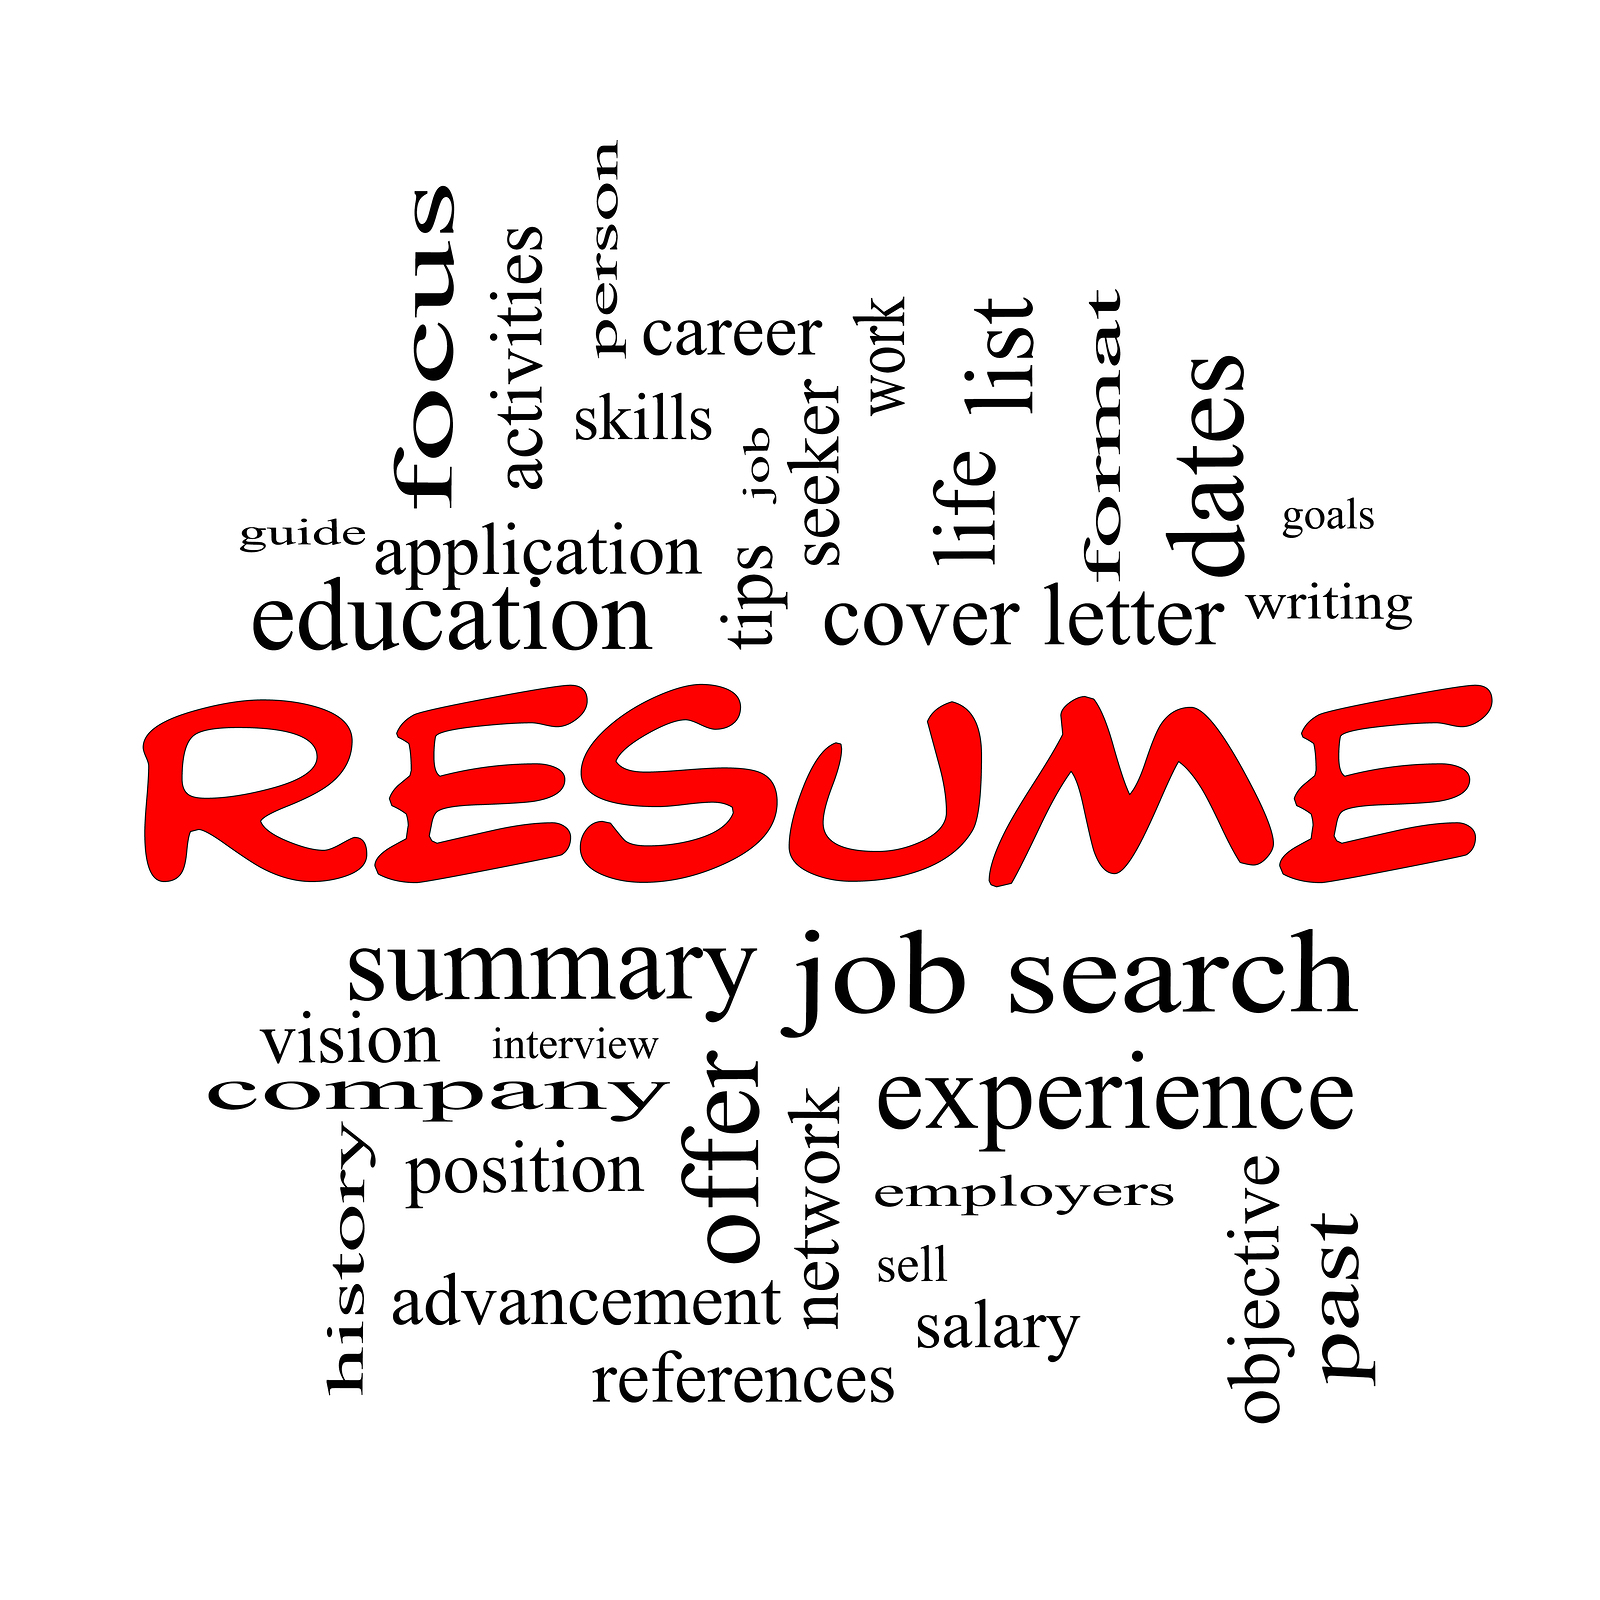 proofreading  copy editing  and resume services